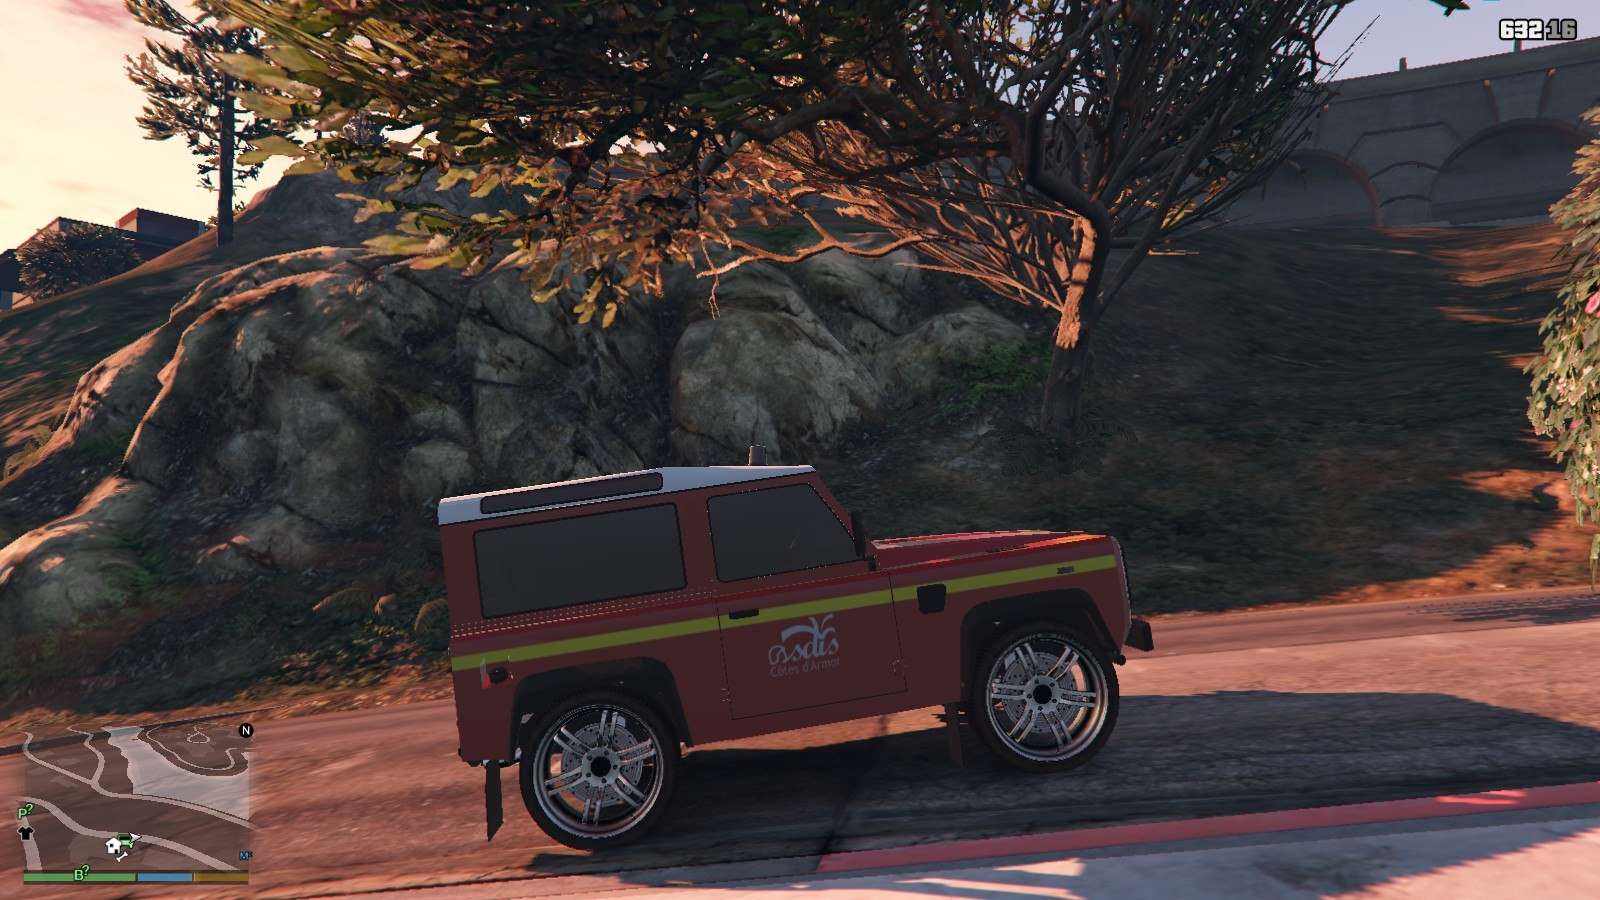 Land Rover Defender GTA5 Mods (4)